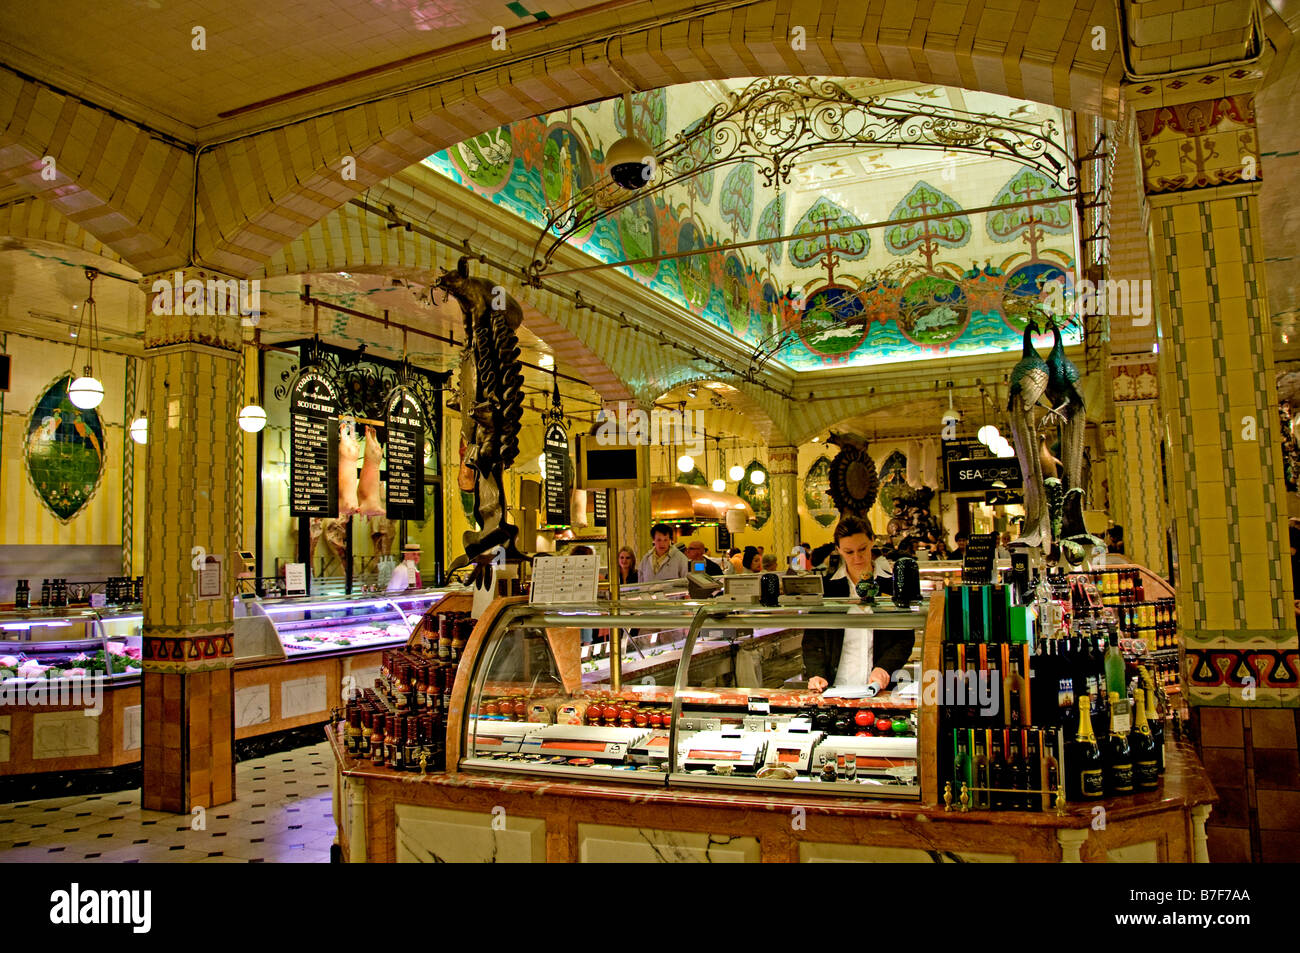 Harrods London most famous department store Knightsbridge grocery Stock Photo: 21848018 - Alamy